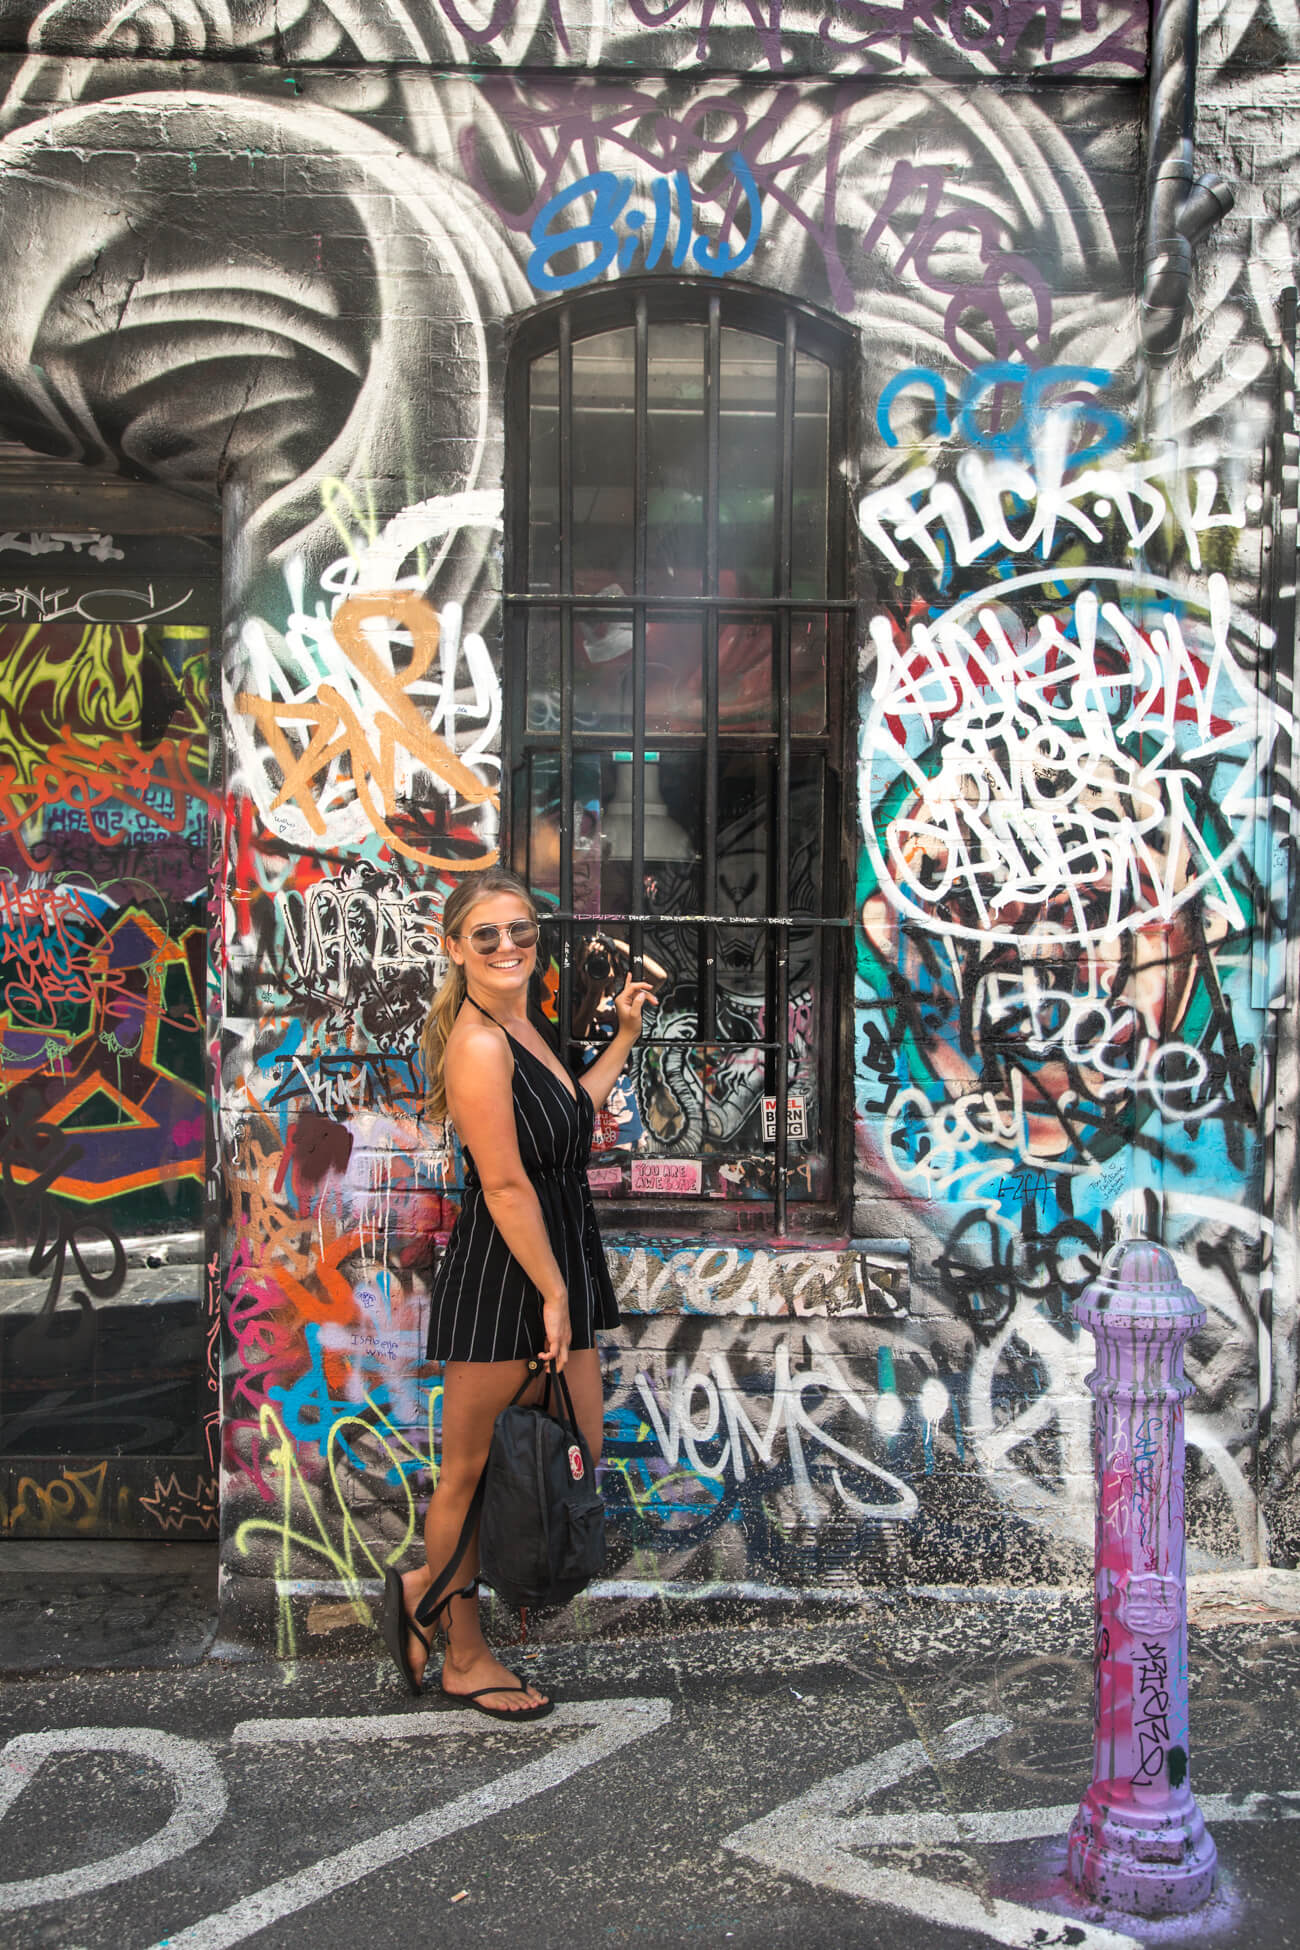 A Guide To Melbourne - what to see, eat and do | Where's Mollie? A UK Travel and Adventure Lifestyle Blog